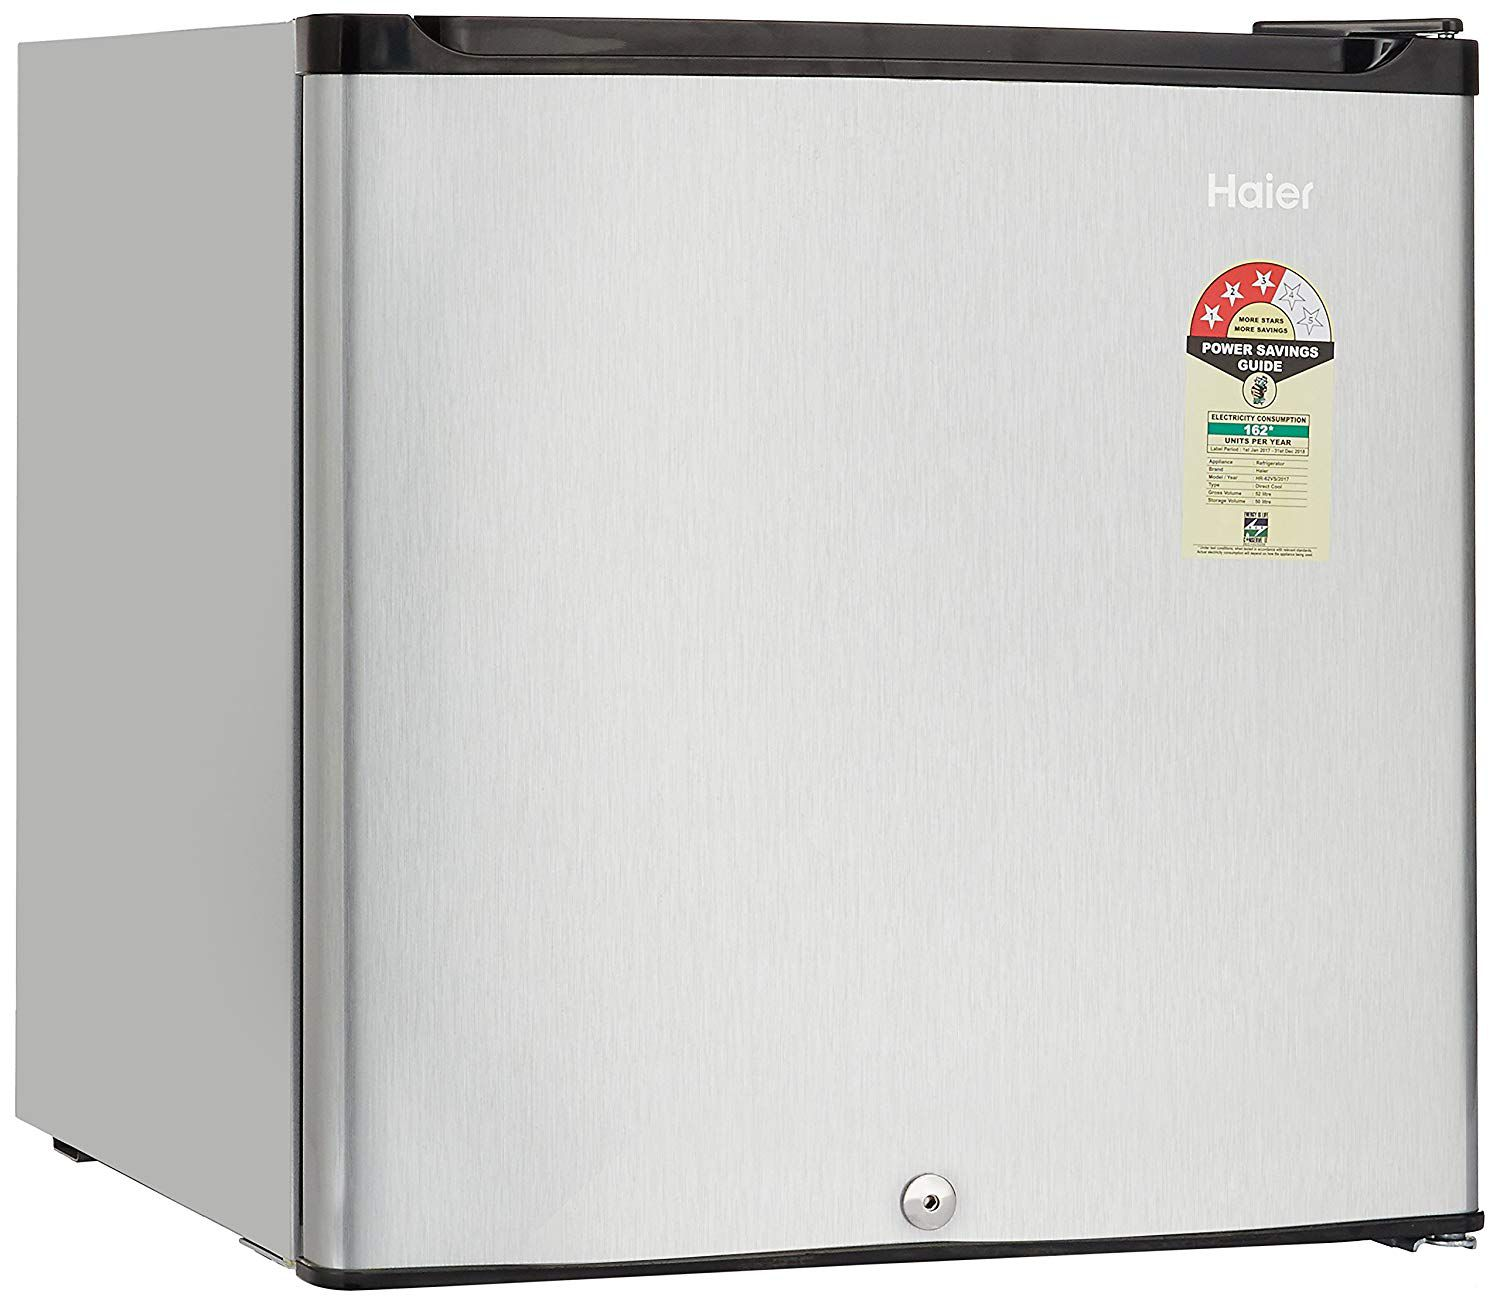 Haier 52 Ltr Mini Refrigerator Silver Hr 62hp 62vs Price In Compact Wiring Diagram